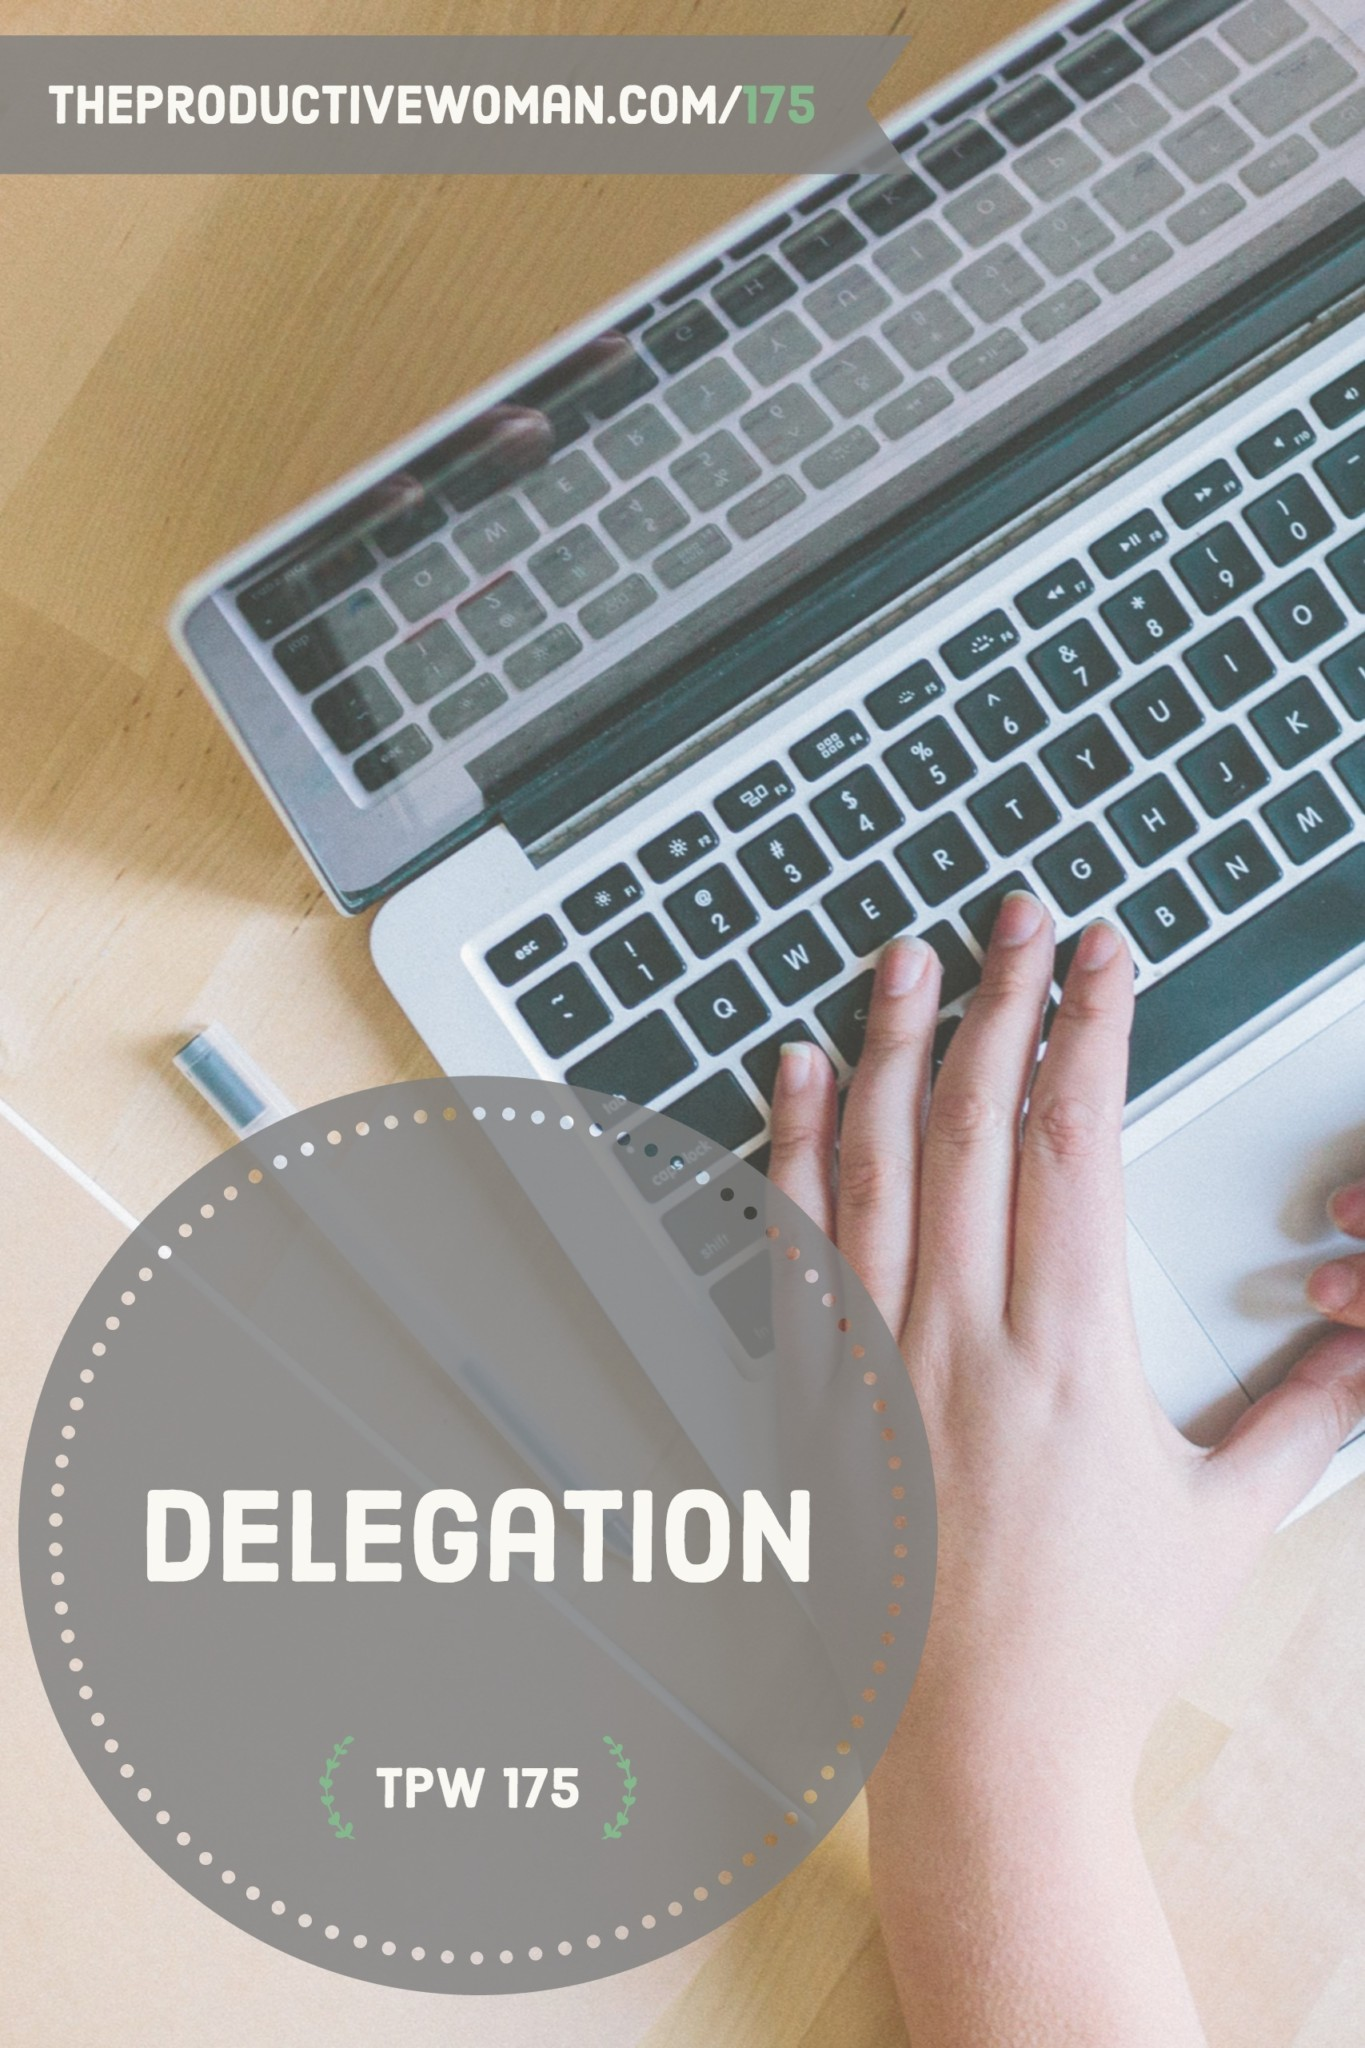 Episode 175 of The Productive Woman podcast takes a look at the why and how of delegating as a key productivity skill. Find more at TheProductiveWoman.com/175.